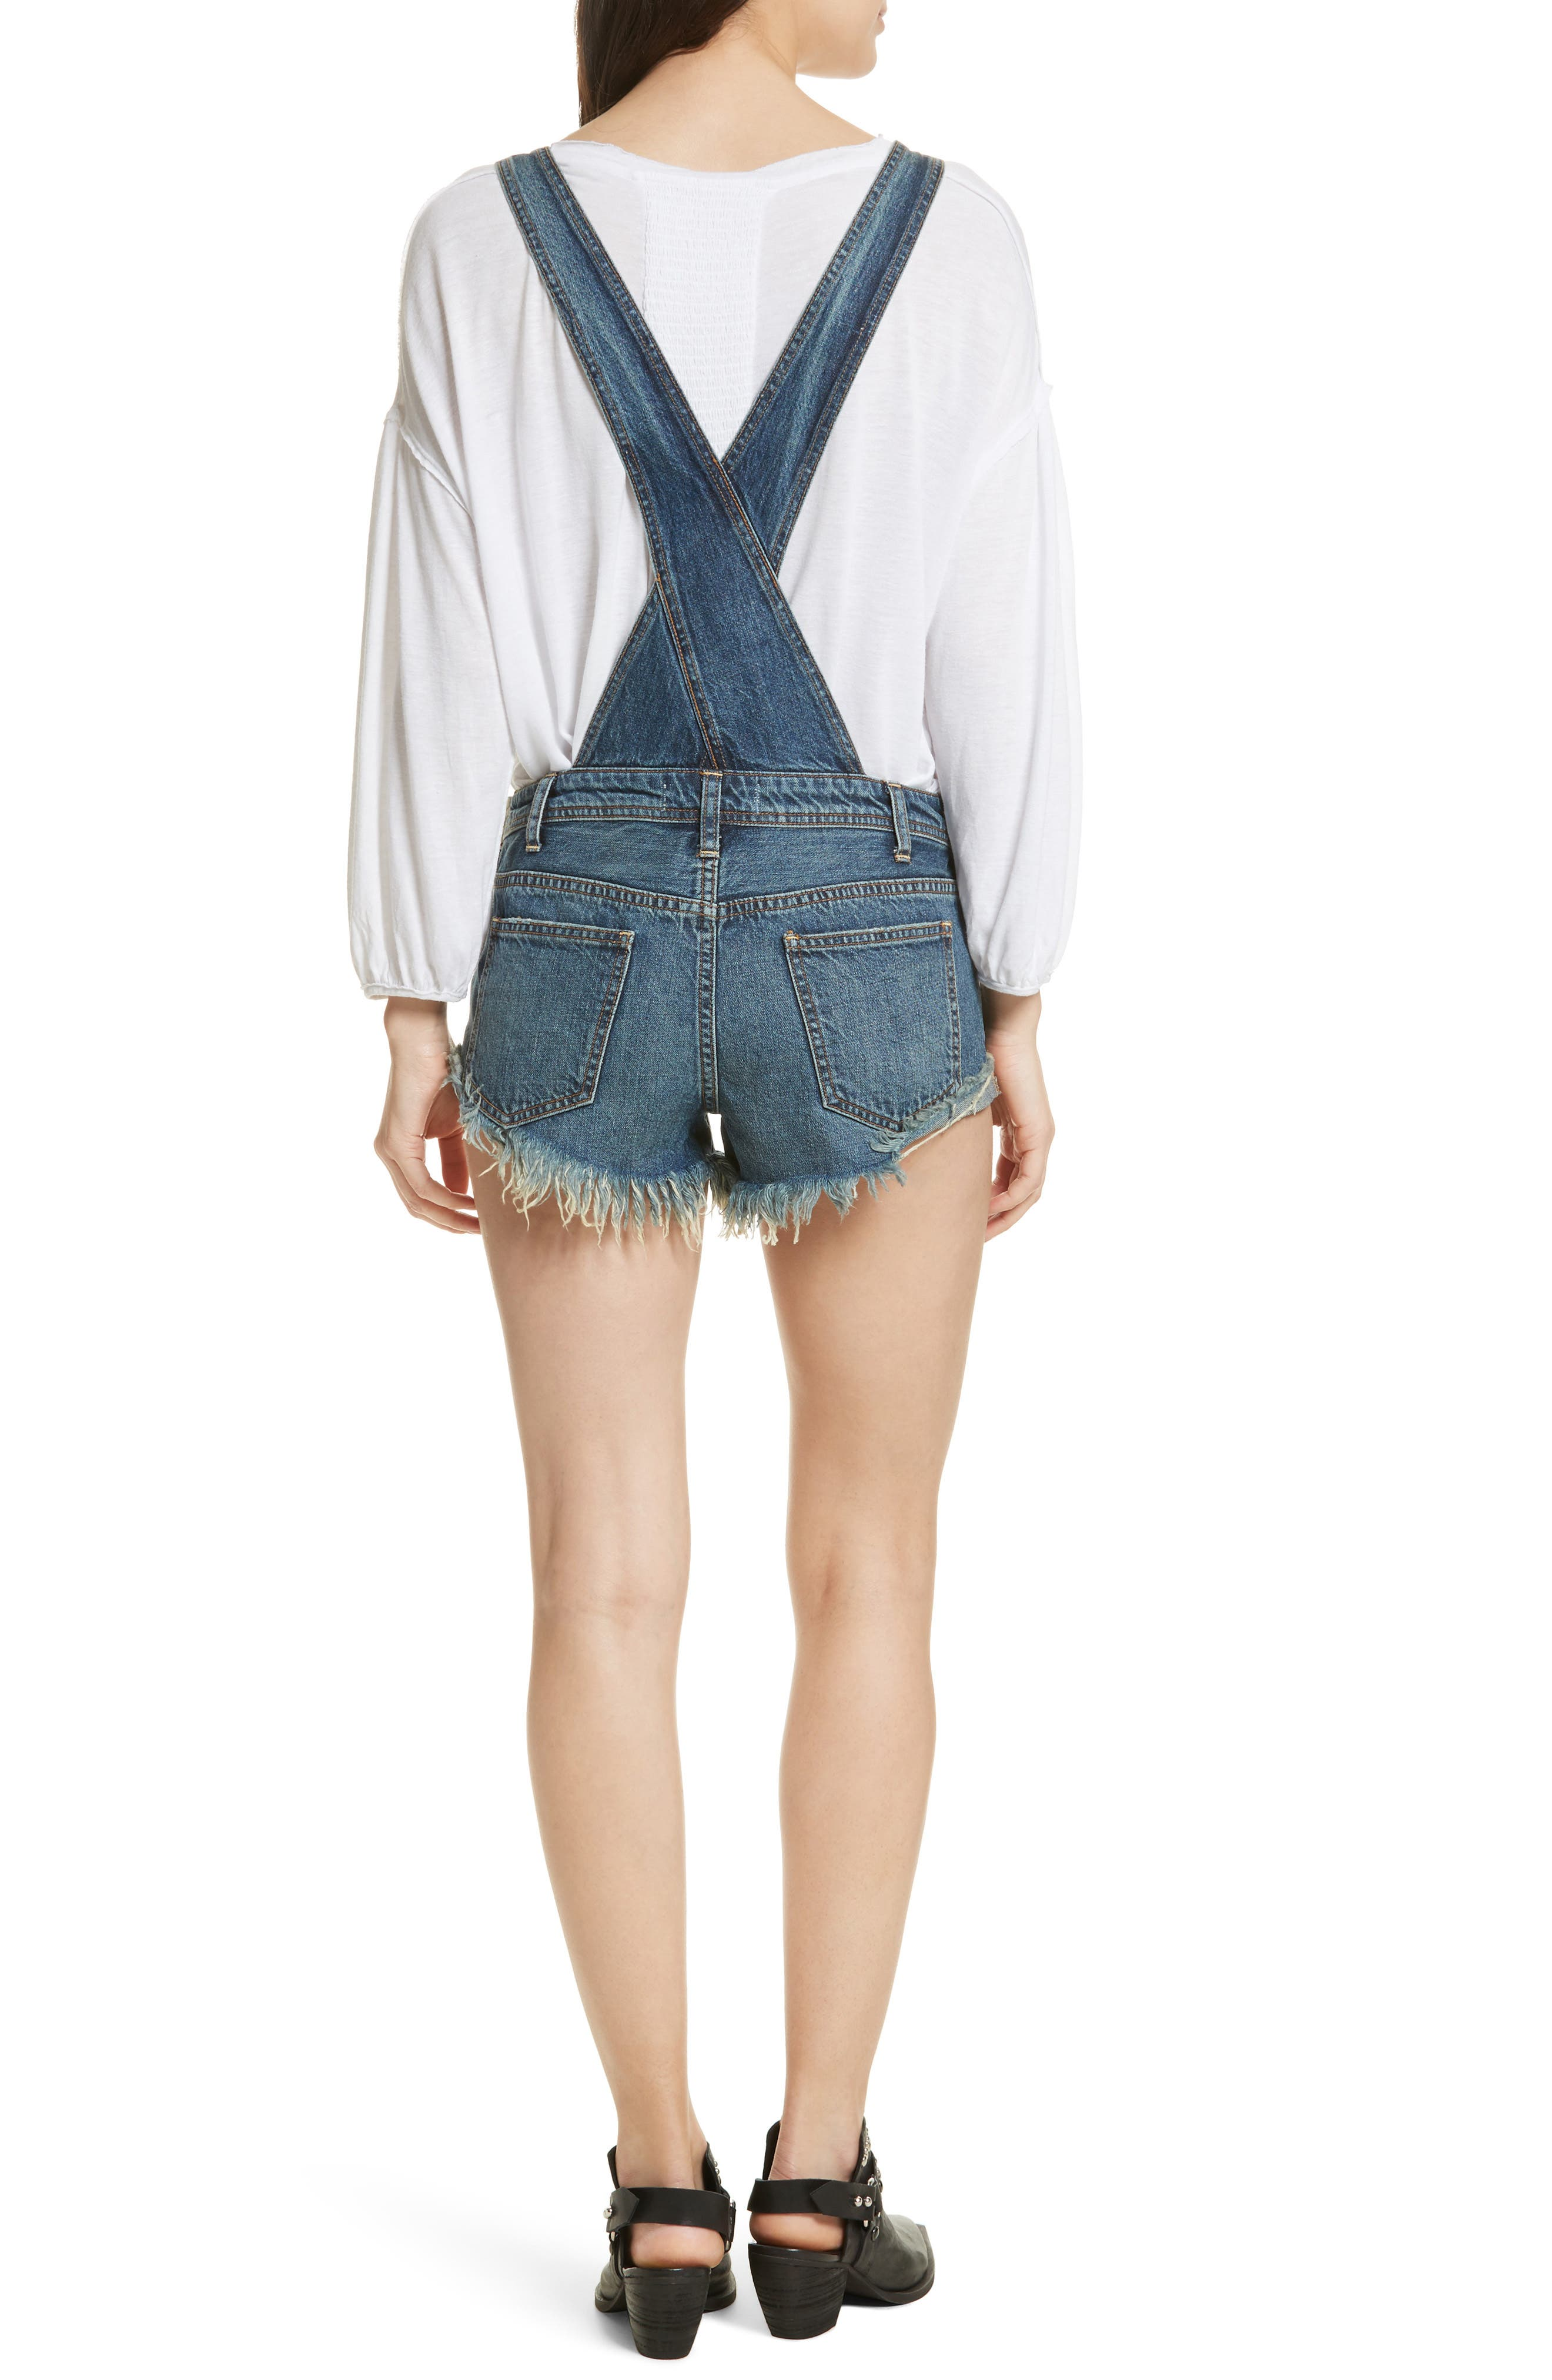 FREE PEOPLE,                             Summer Babe Short Overalls,                             Alternate thumbnail 2, color,                             400